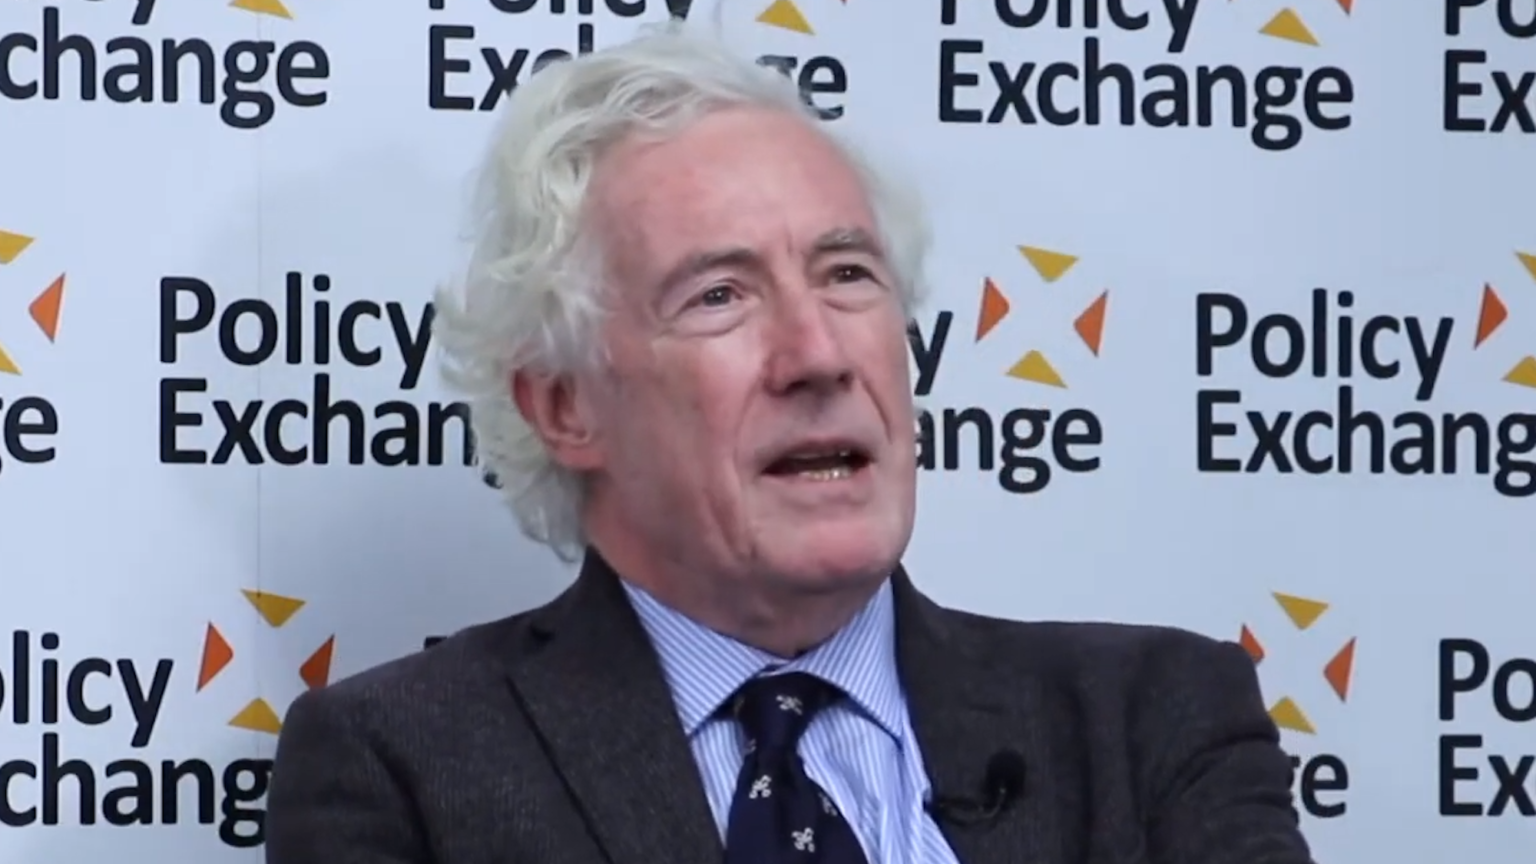 Lord Sumption: the monstering of a lockdown sceptic